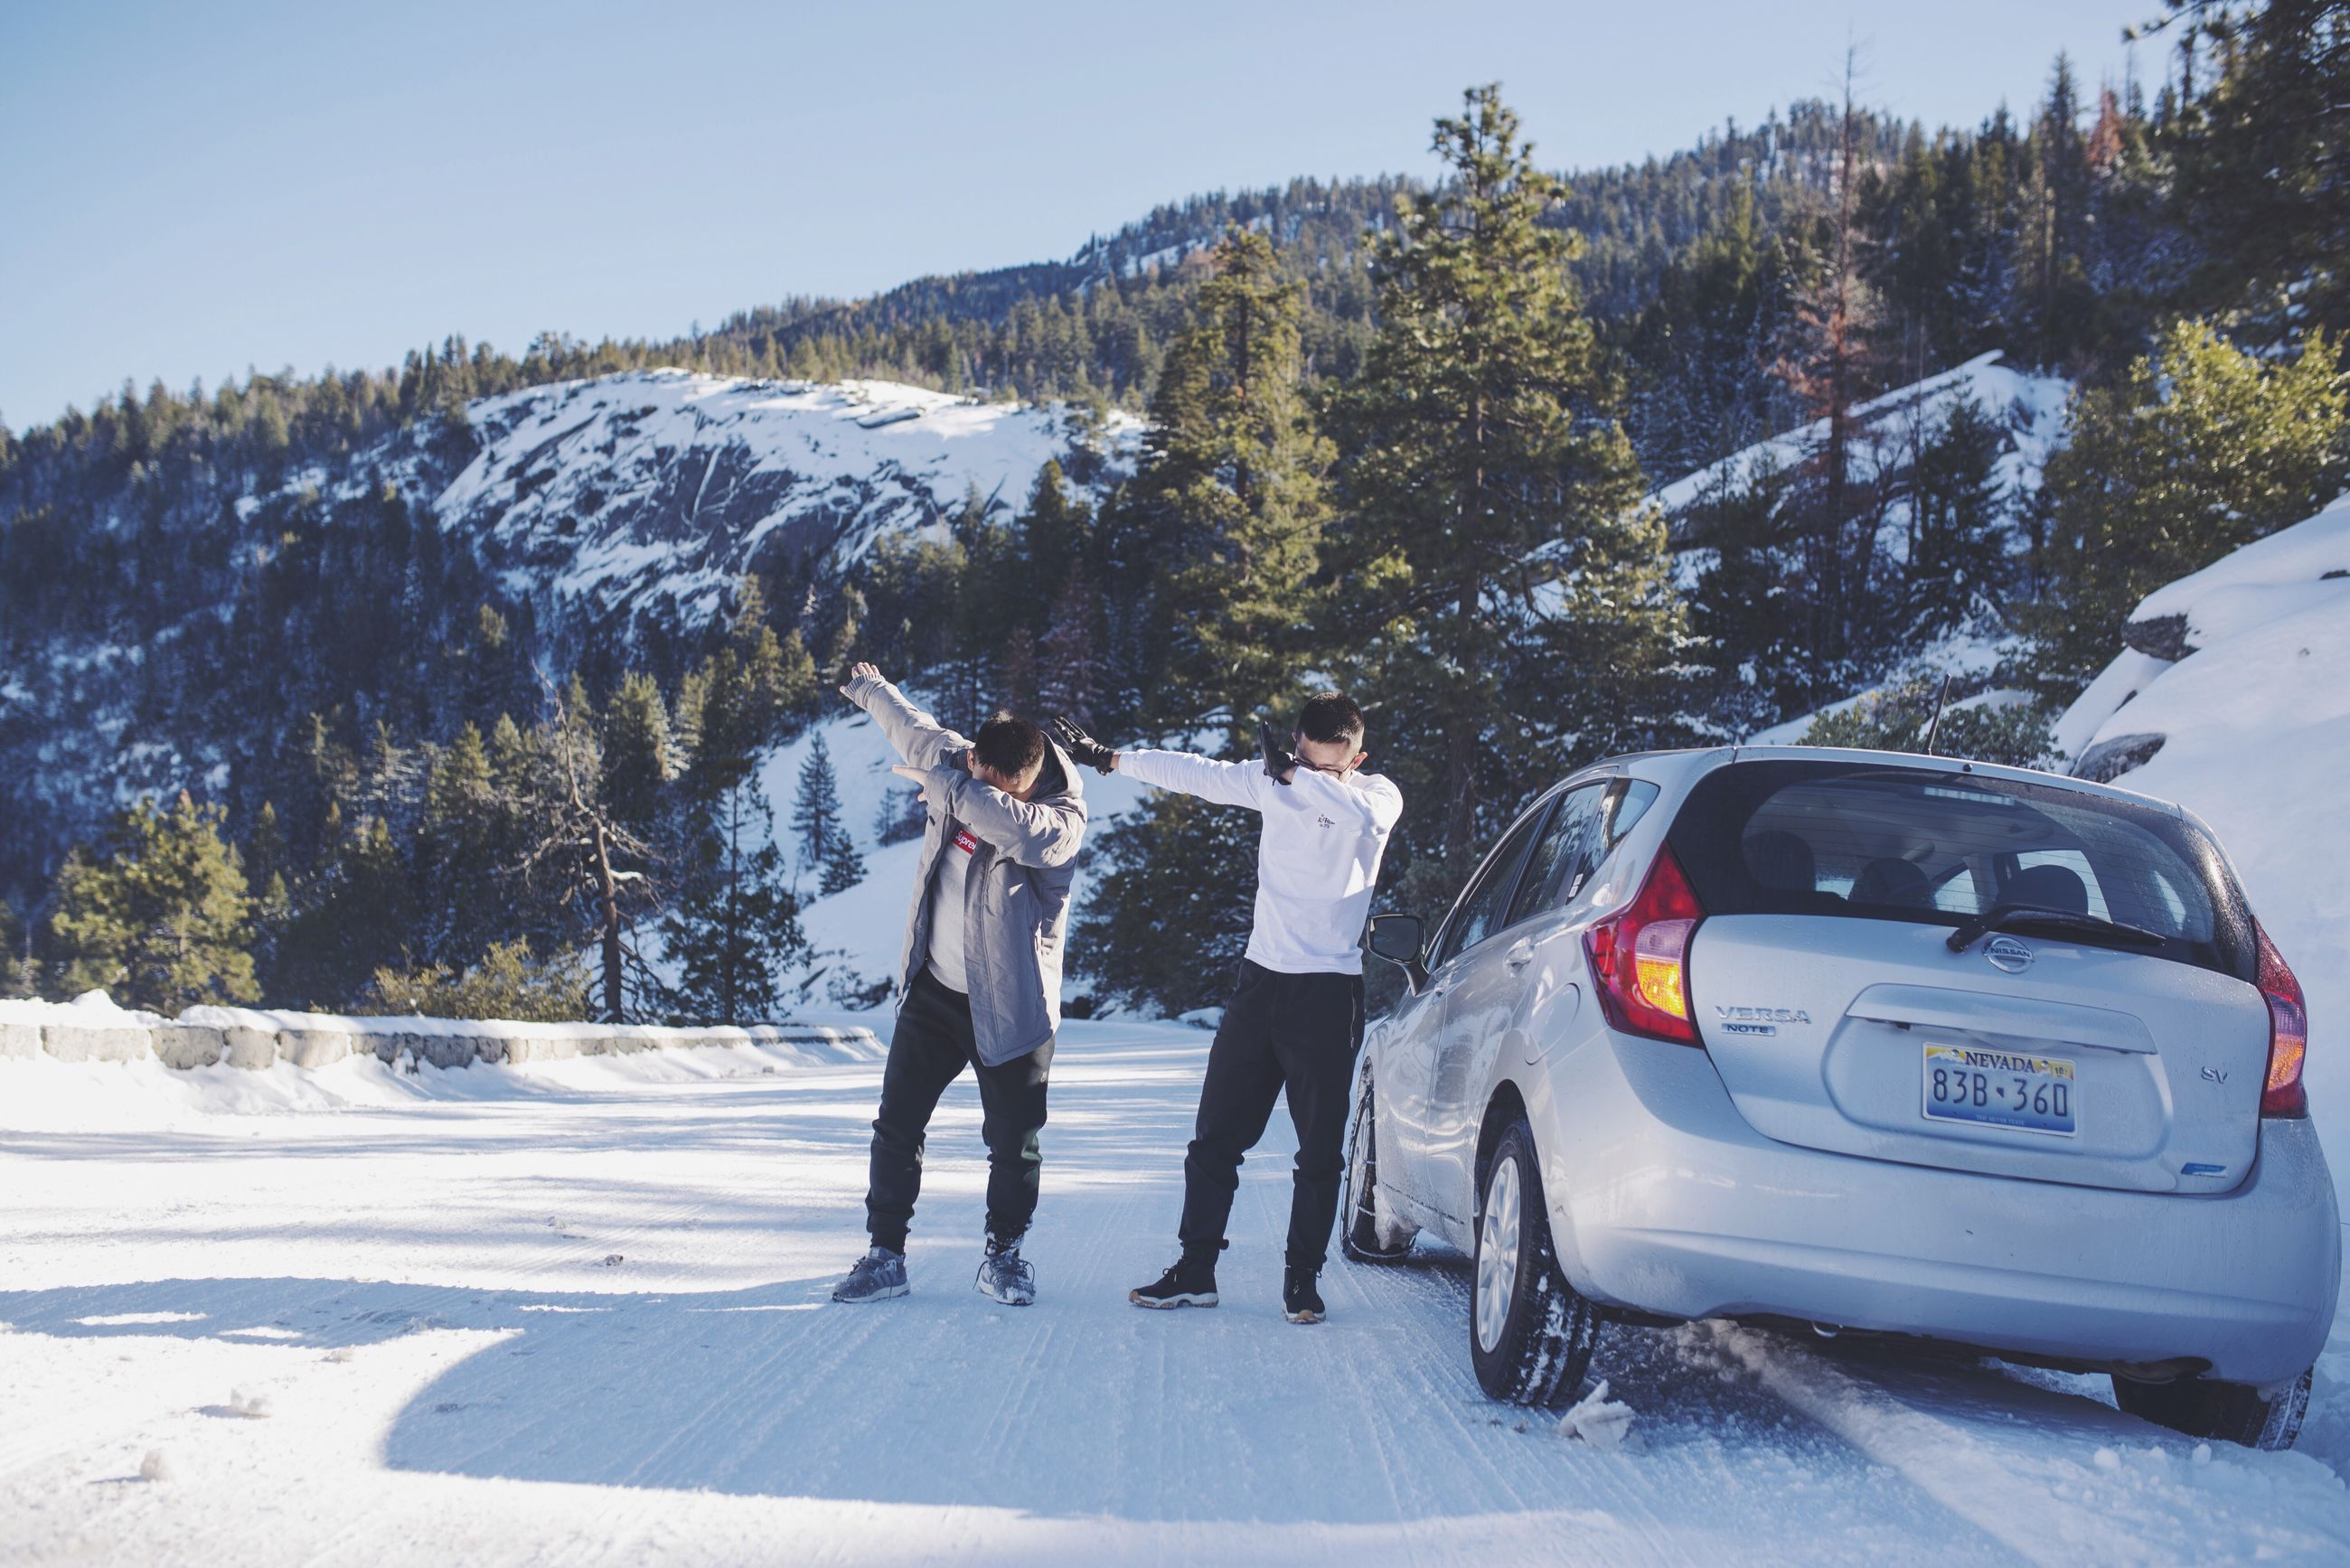 snow, winter, cold temperature, season, men, lifestyles, leisure activity, mountain, tree, full length, walking, person, rear view, transportation, road, weather, travel, togetherness